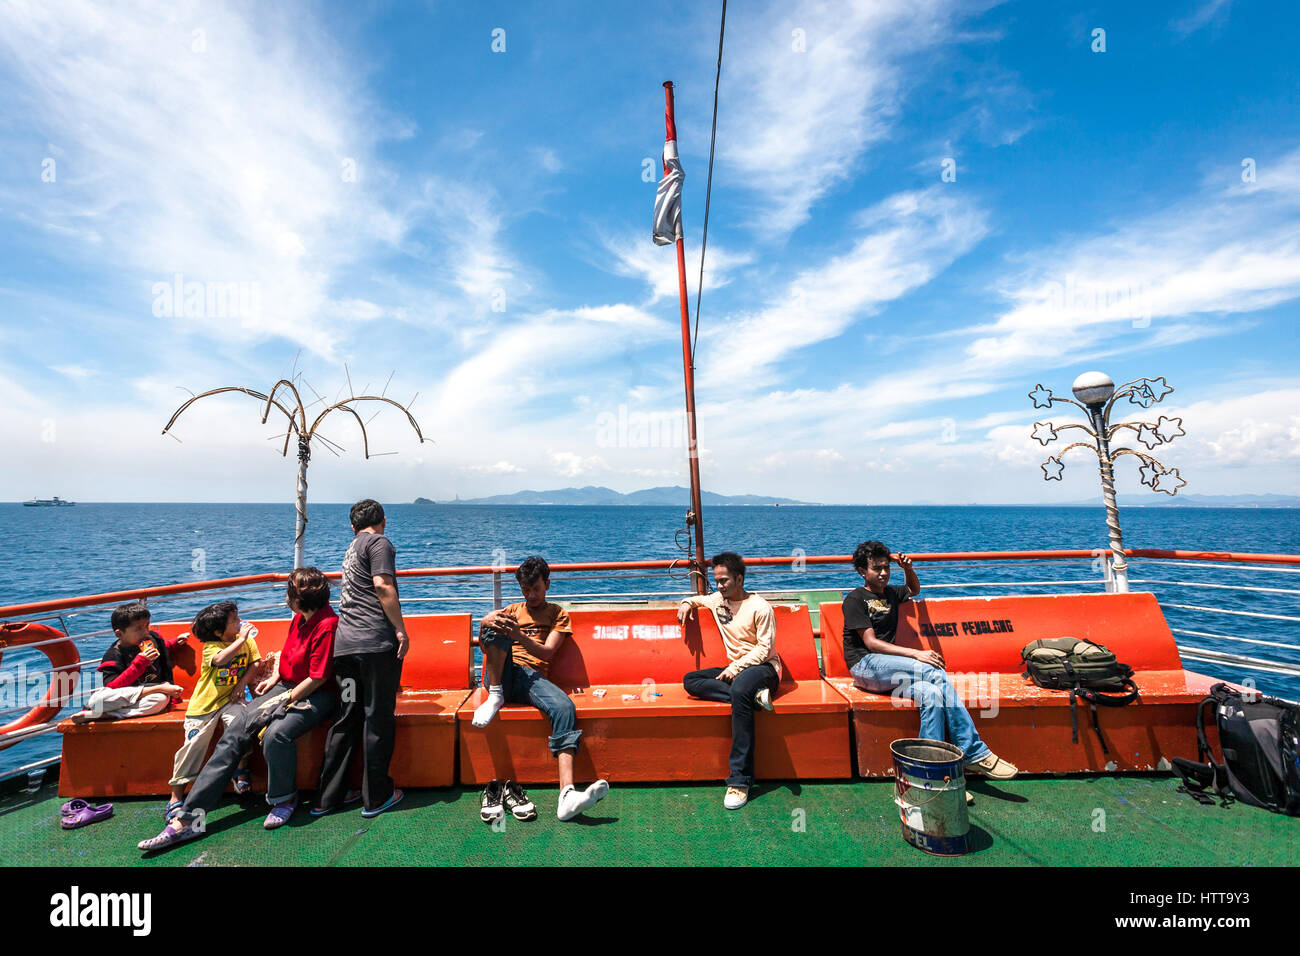 Passengers enjoying leisure time on the upper deck of the ferry during the Sunda Strait crossing. © Reynold - Stock Image